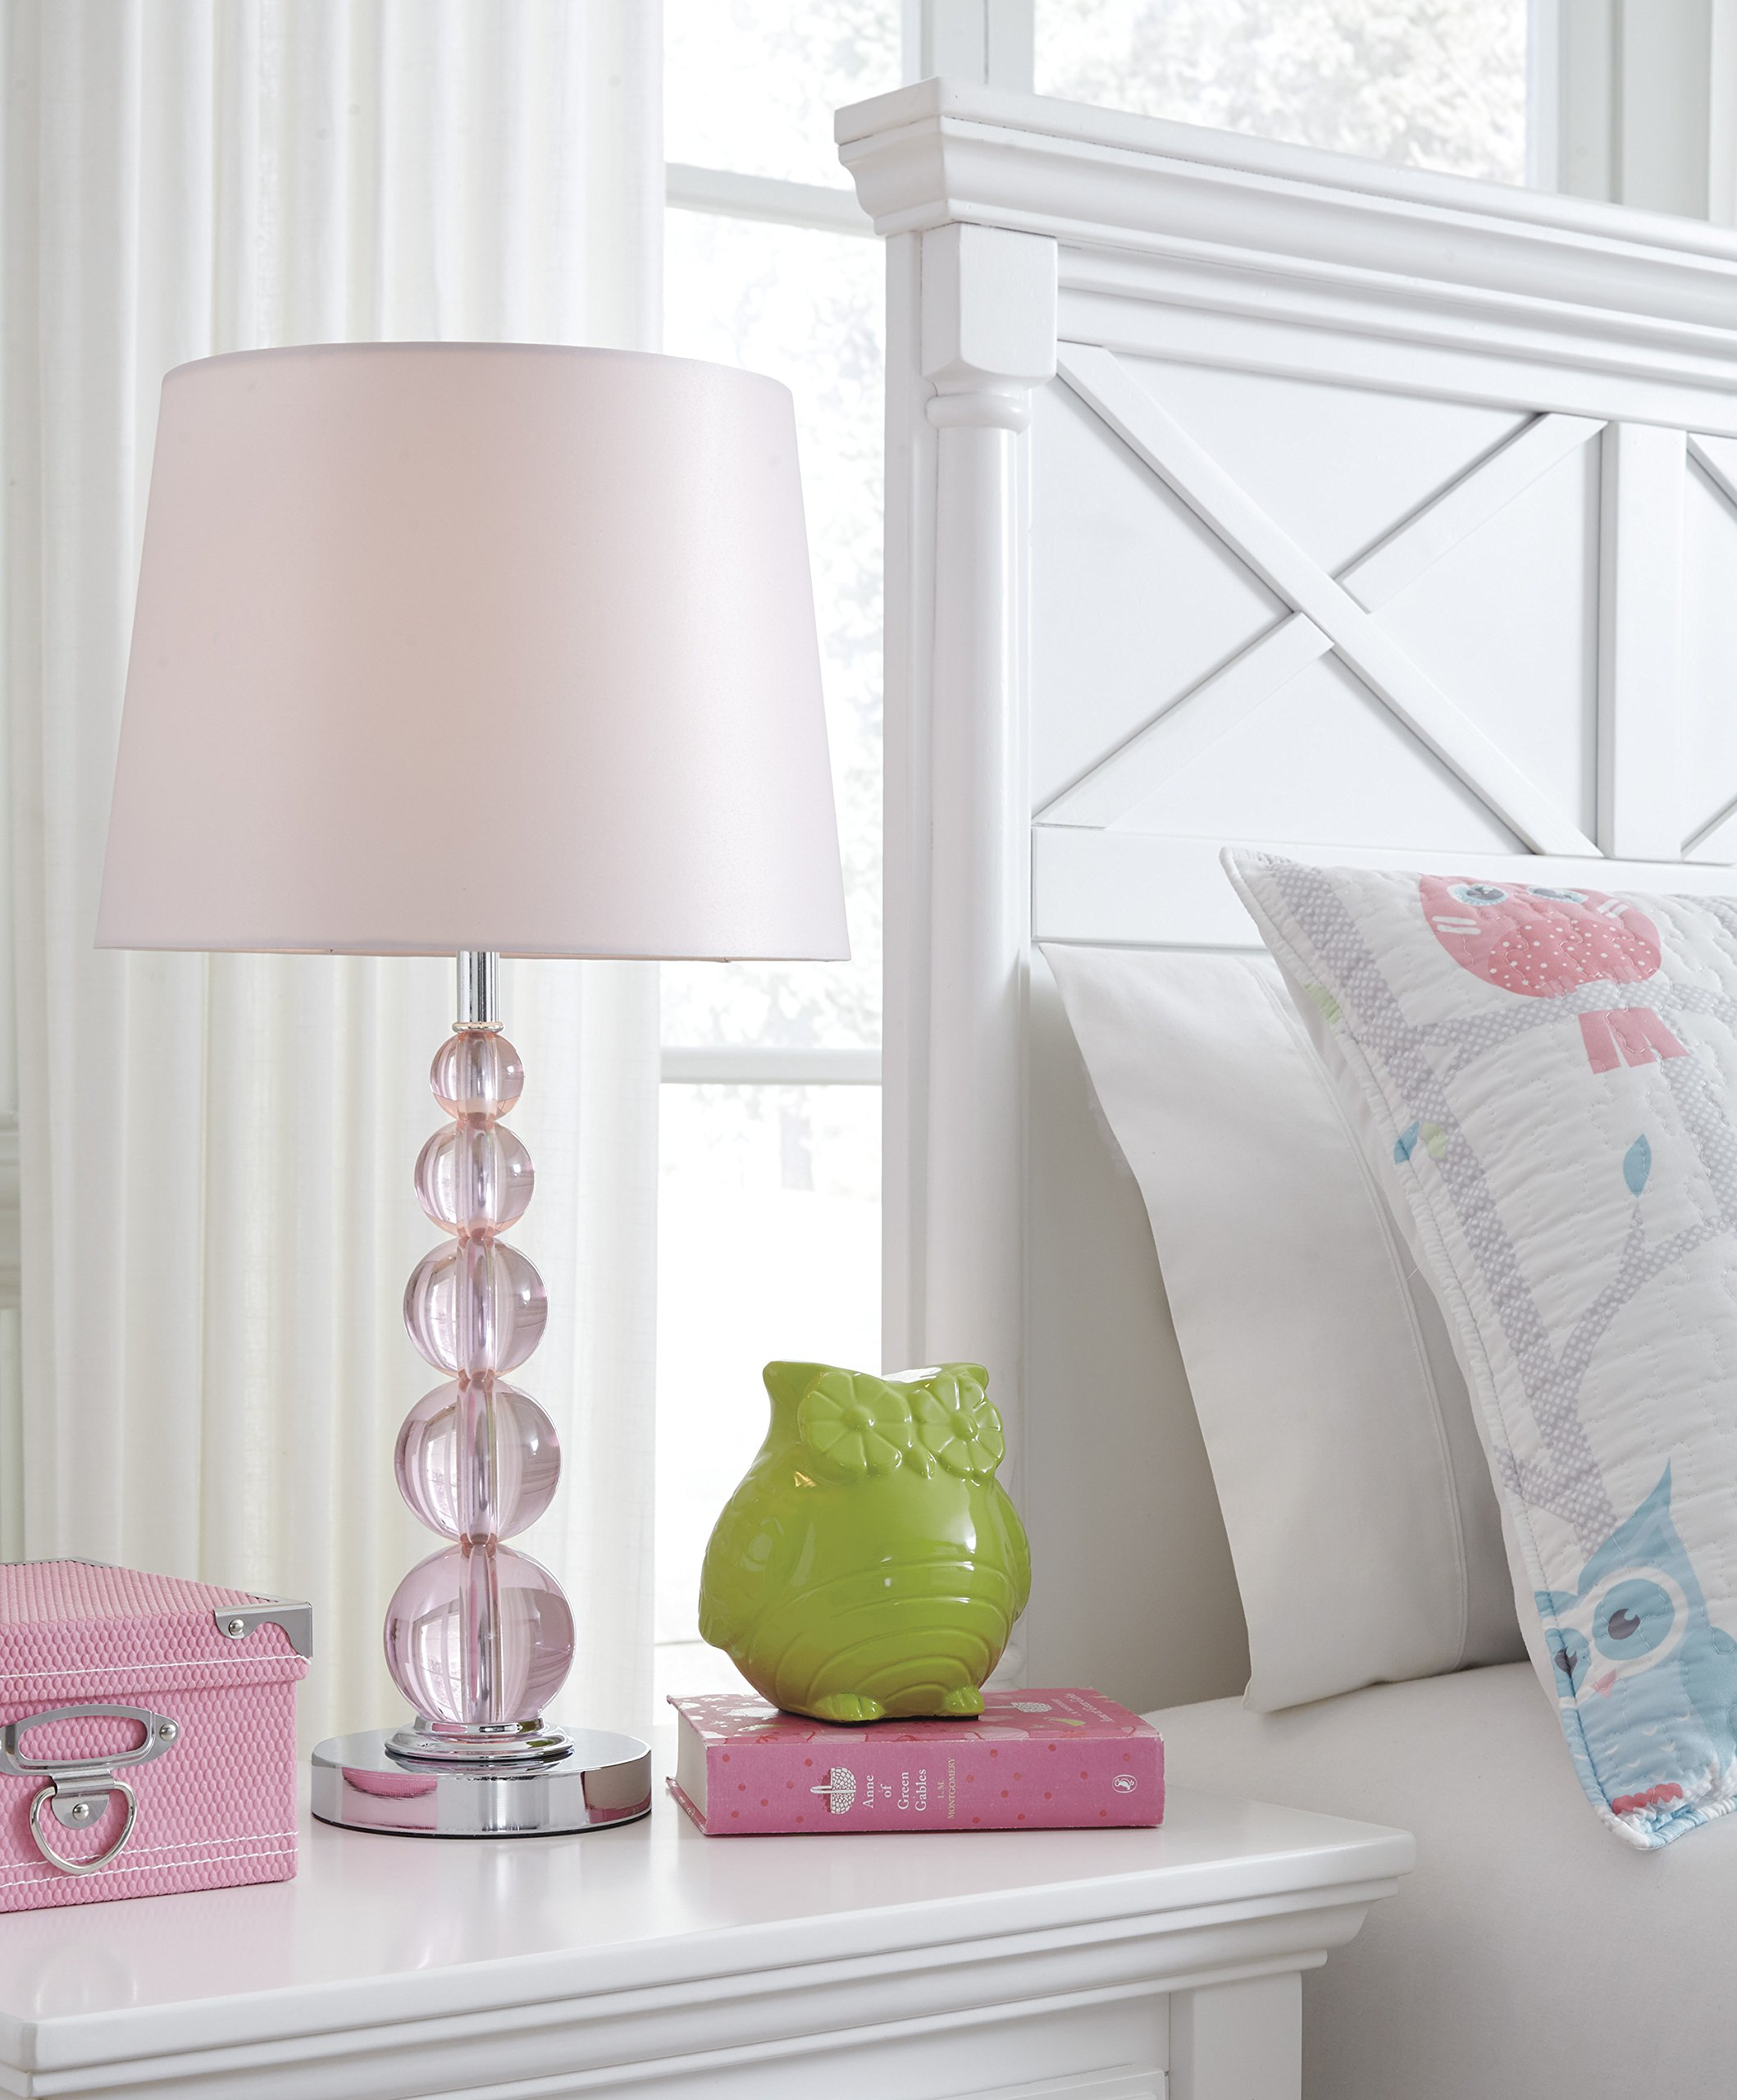 Ashley Furniture Signature Design - Letty Table Lamp - Children's Lamp - Hot Pink by Signature Design by Ashley (Image #3)